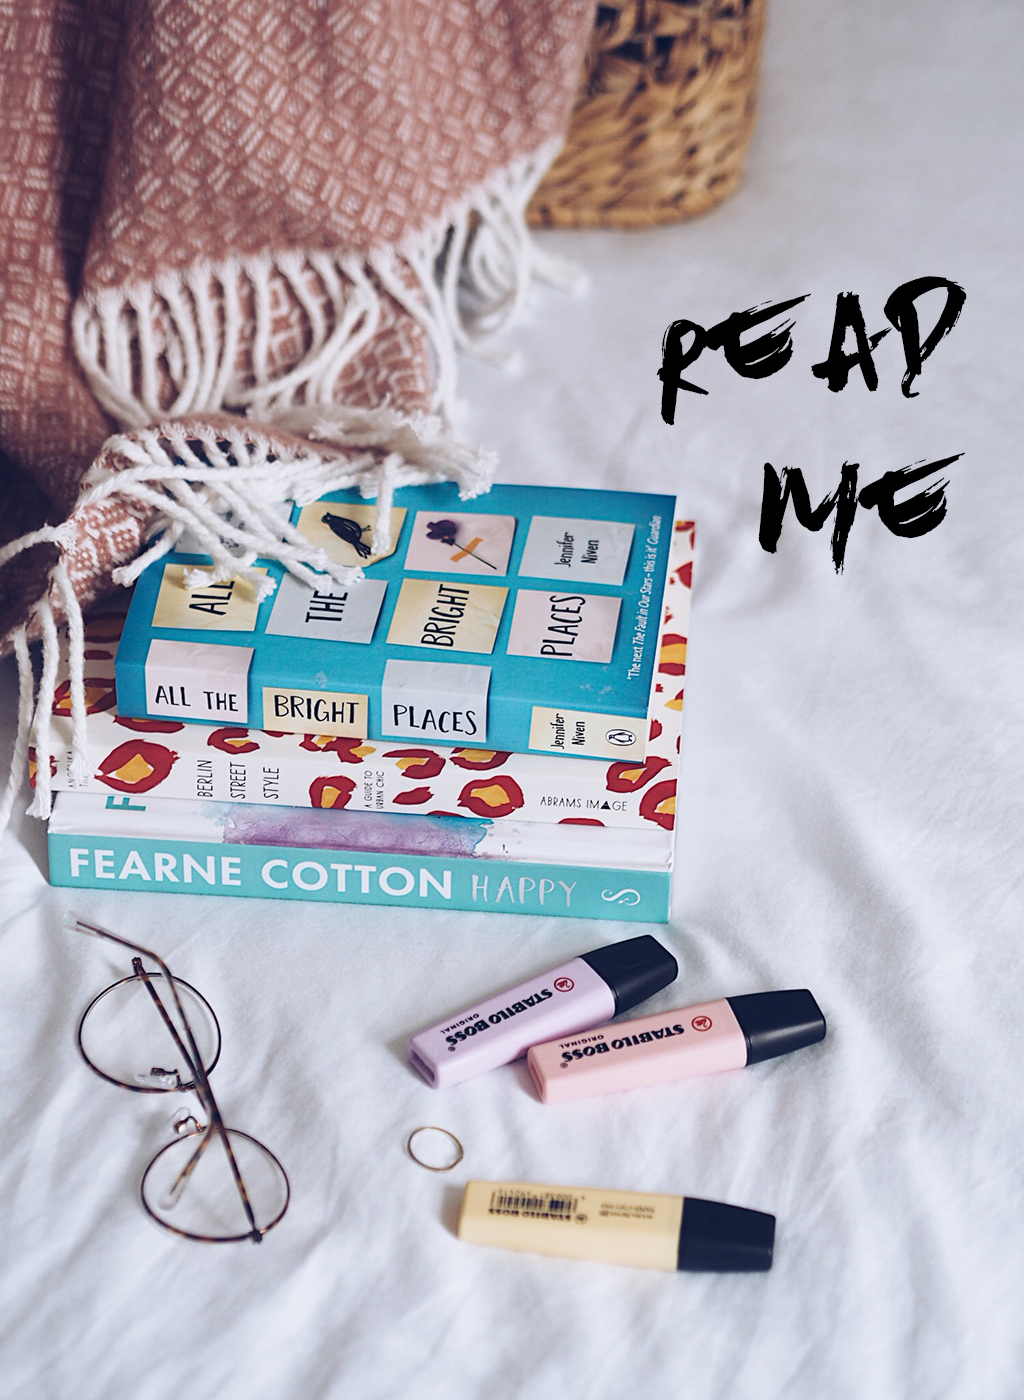 Fearne Cotton Happy book